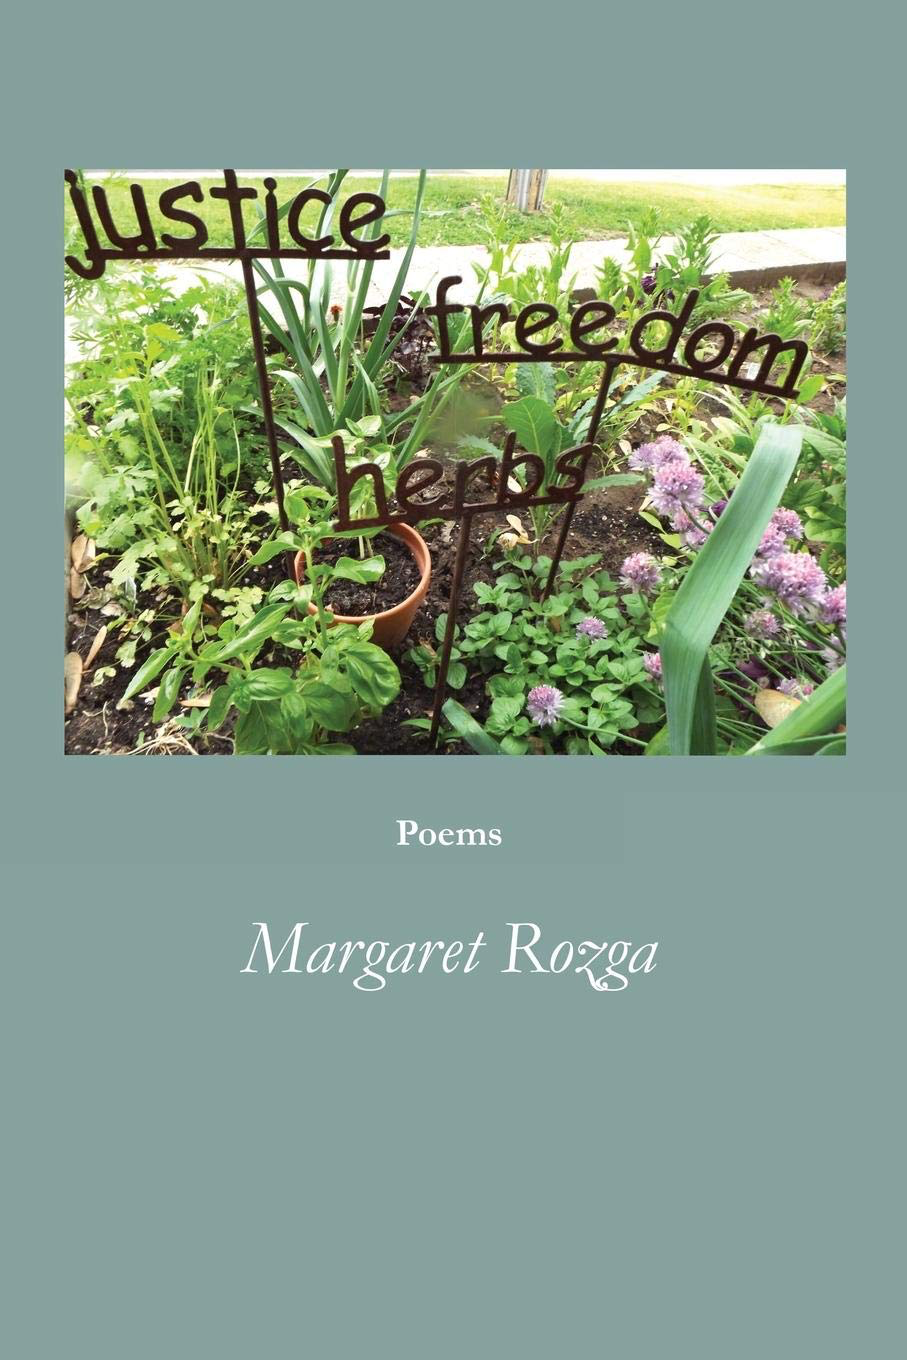 Justice Freedom Herbs: Poems